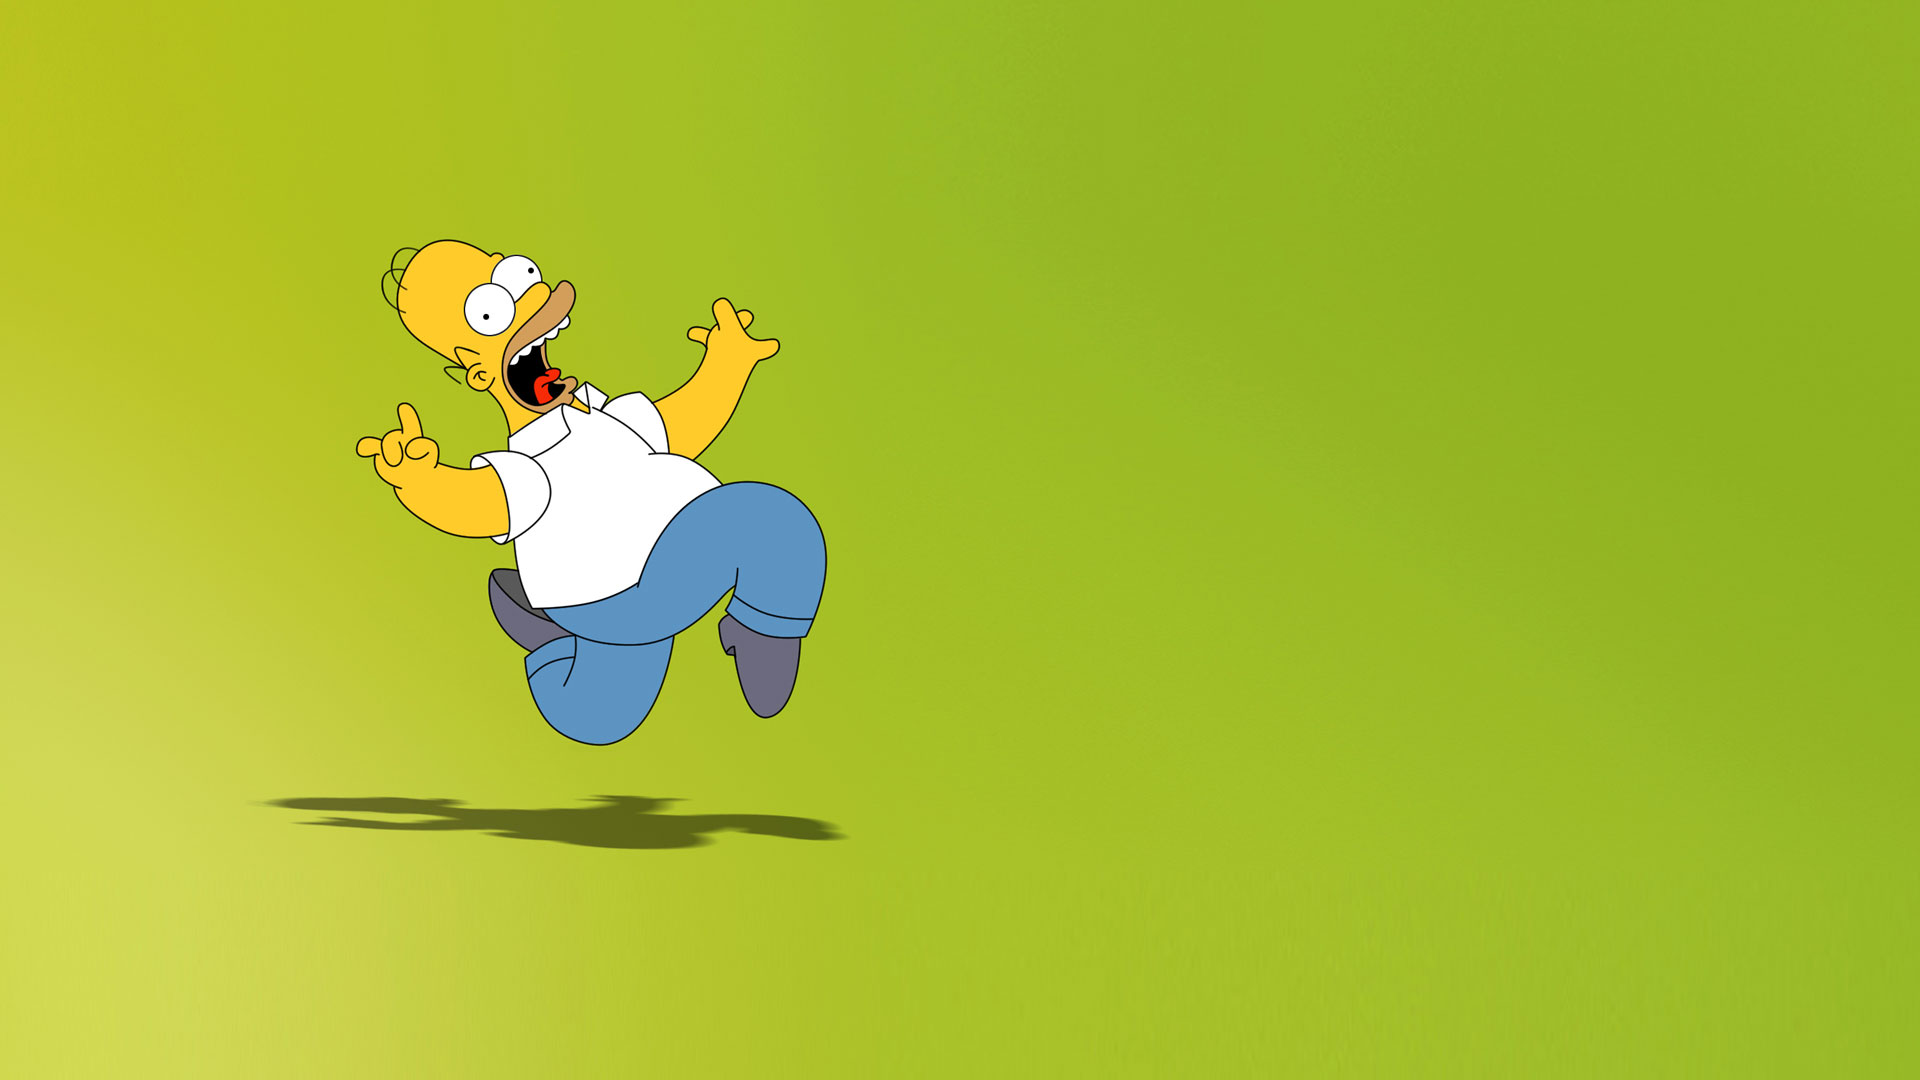 Simpsons Wallpaper #16